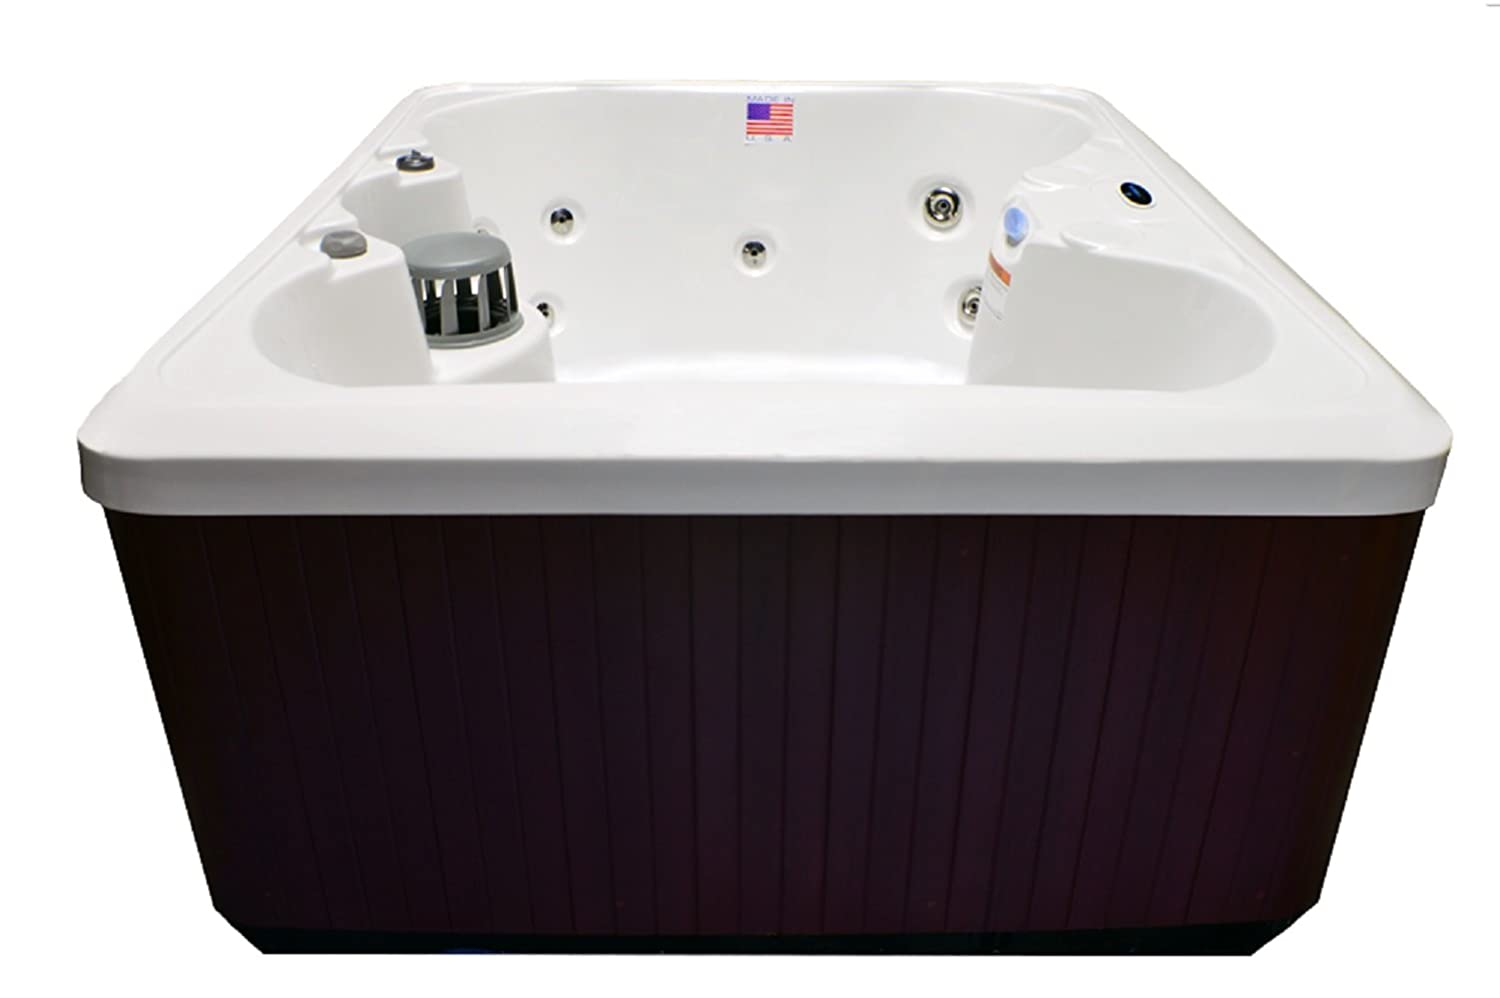 The Best Outdoor Hot Tubs For Your Garden: Reviews & Buying Guide 18